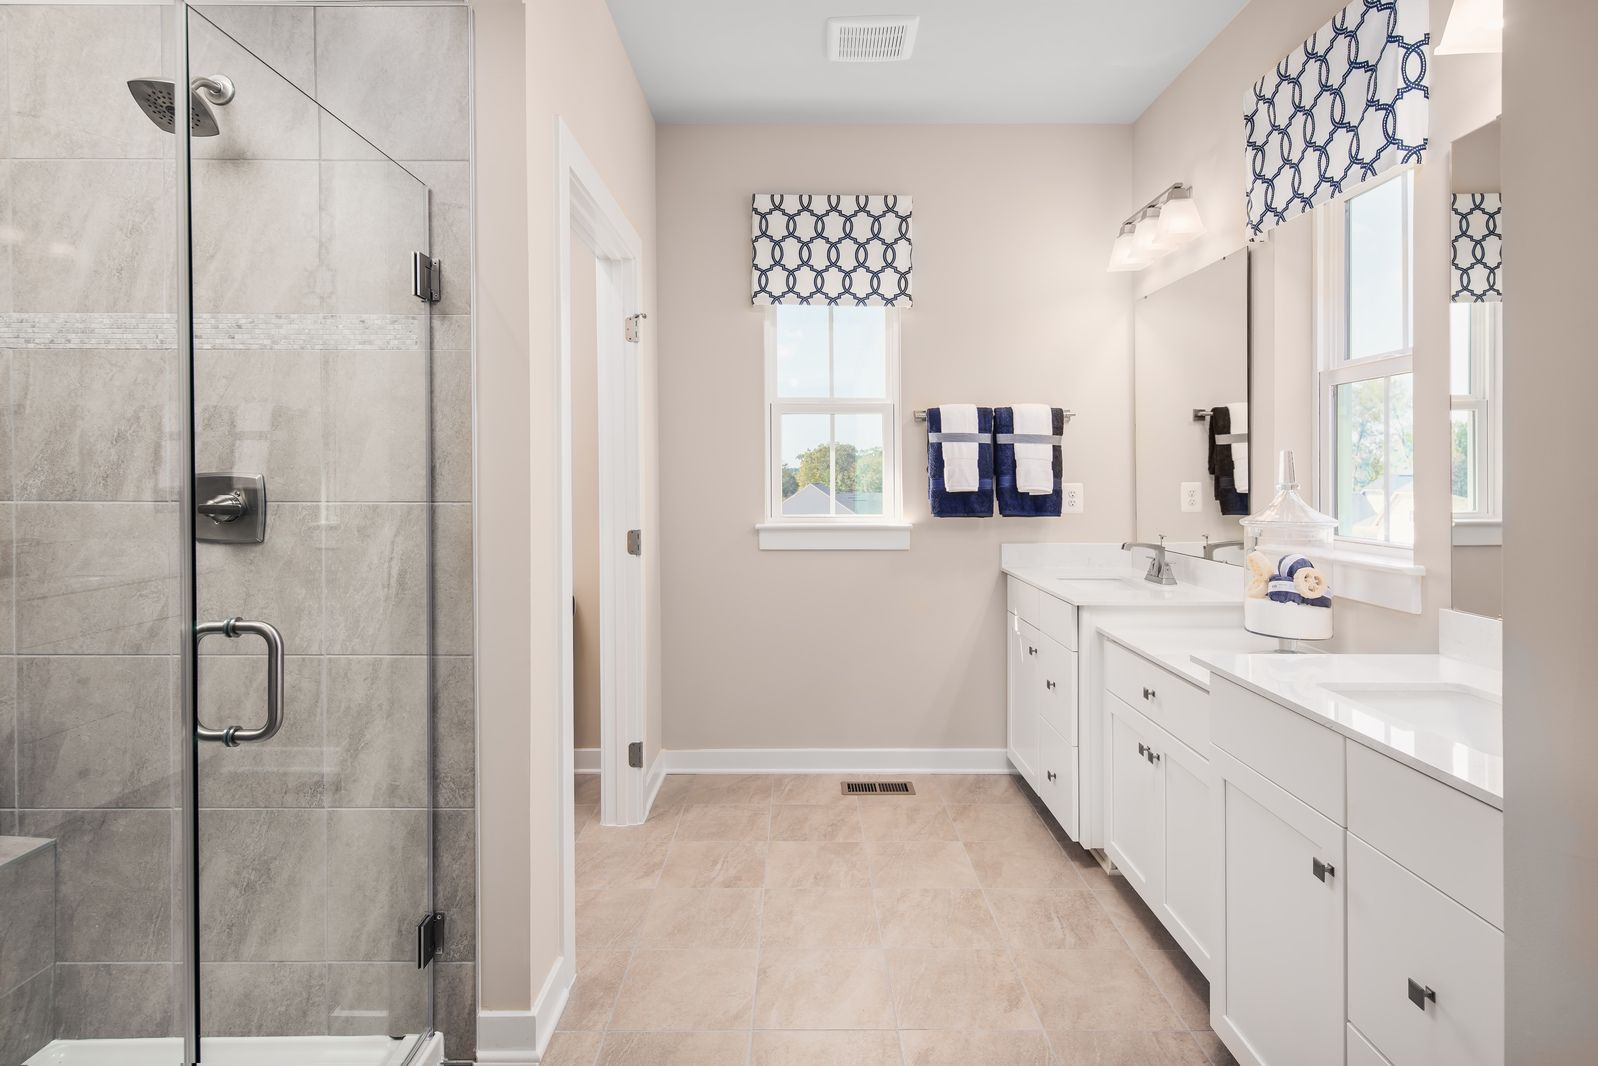 Bathroom featured in the Cumberland By Ryan Homes in Washington, MD